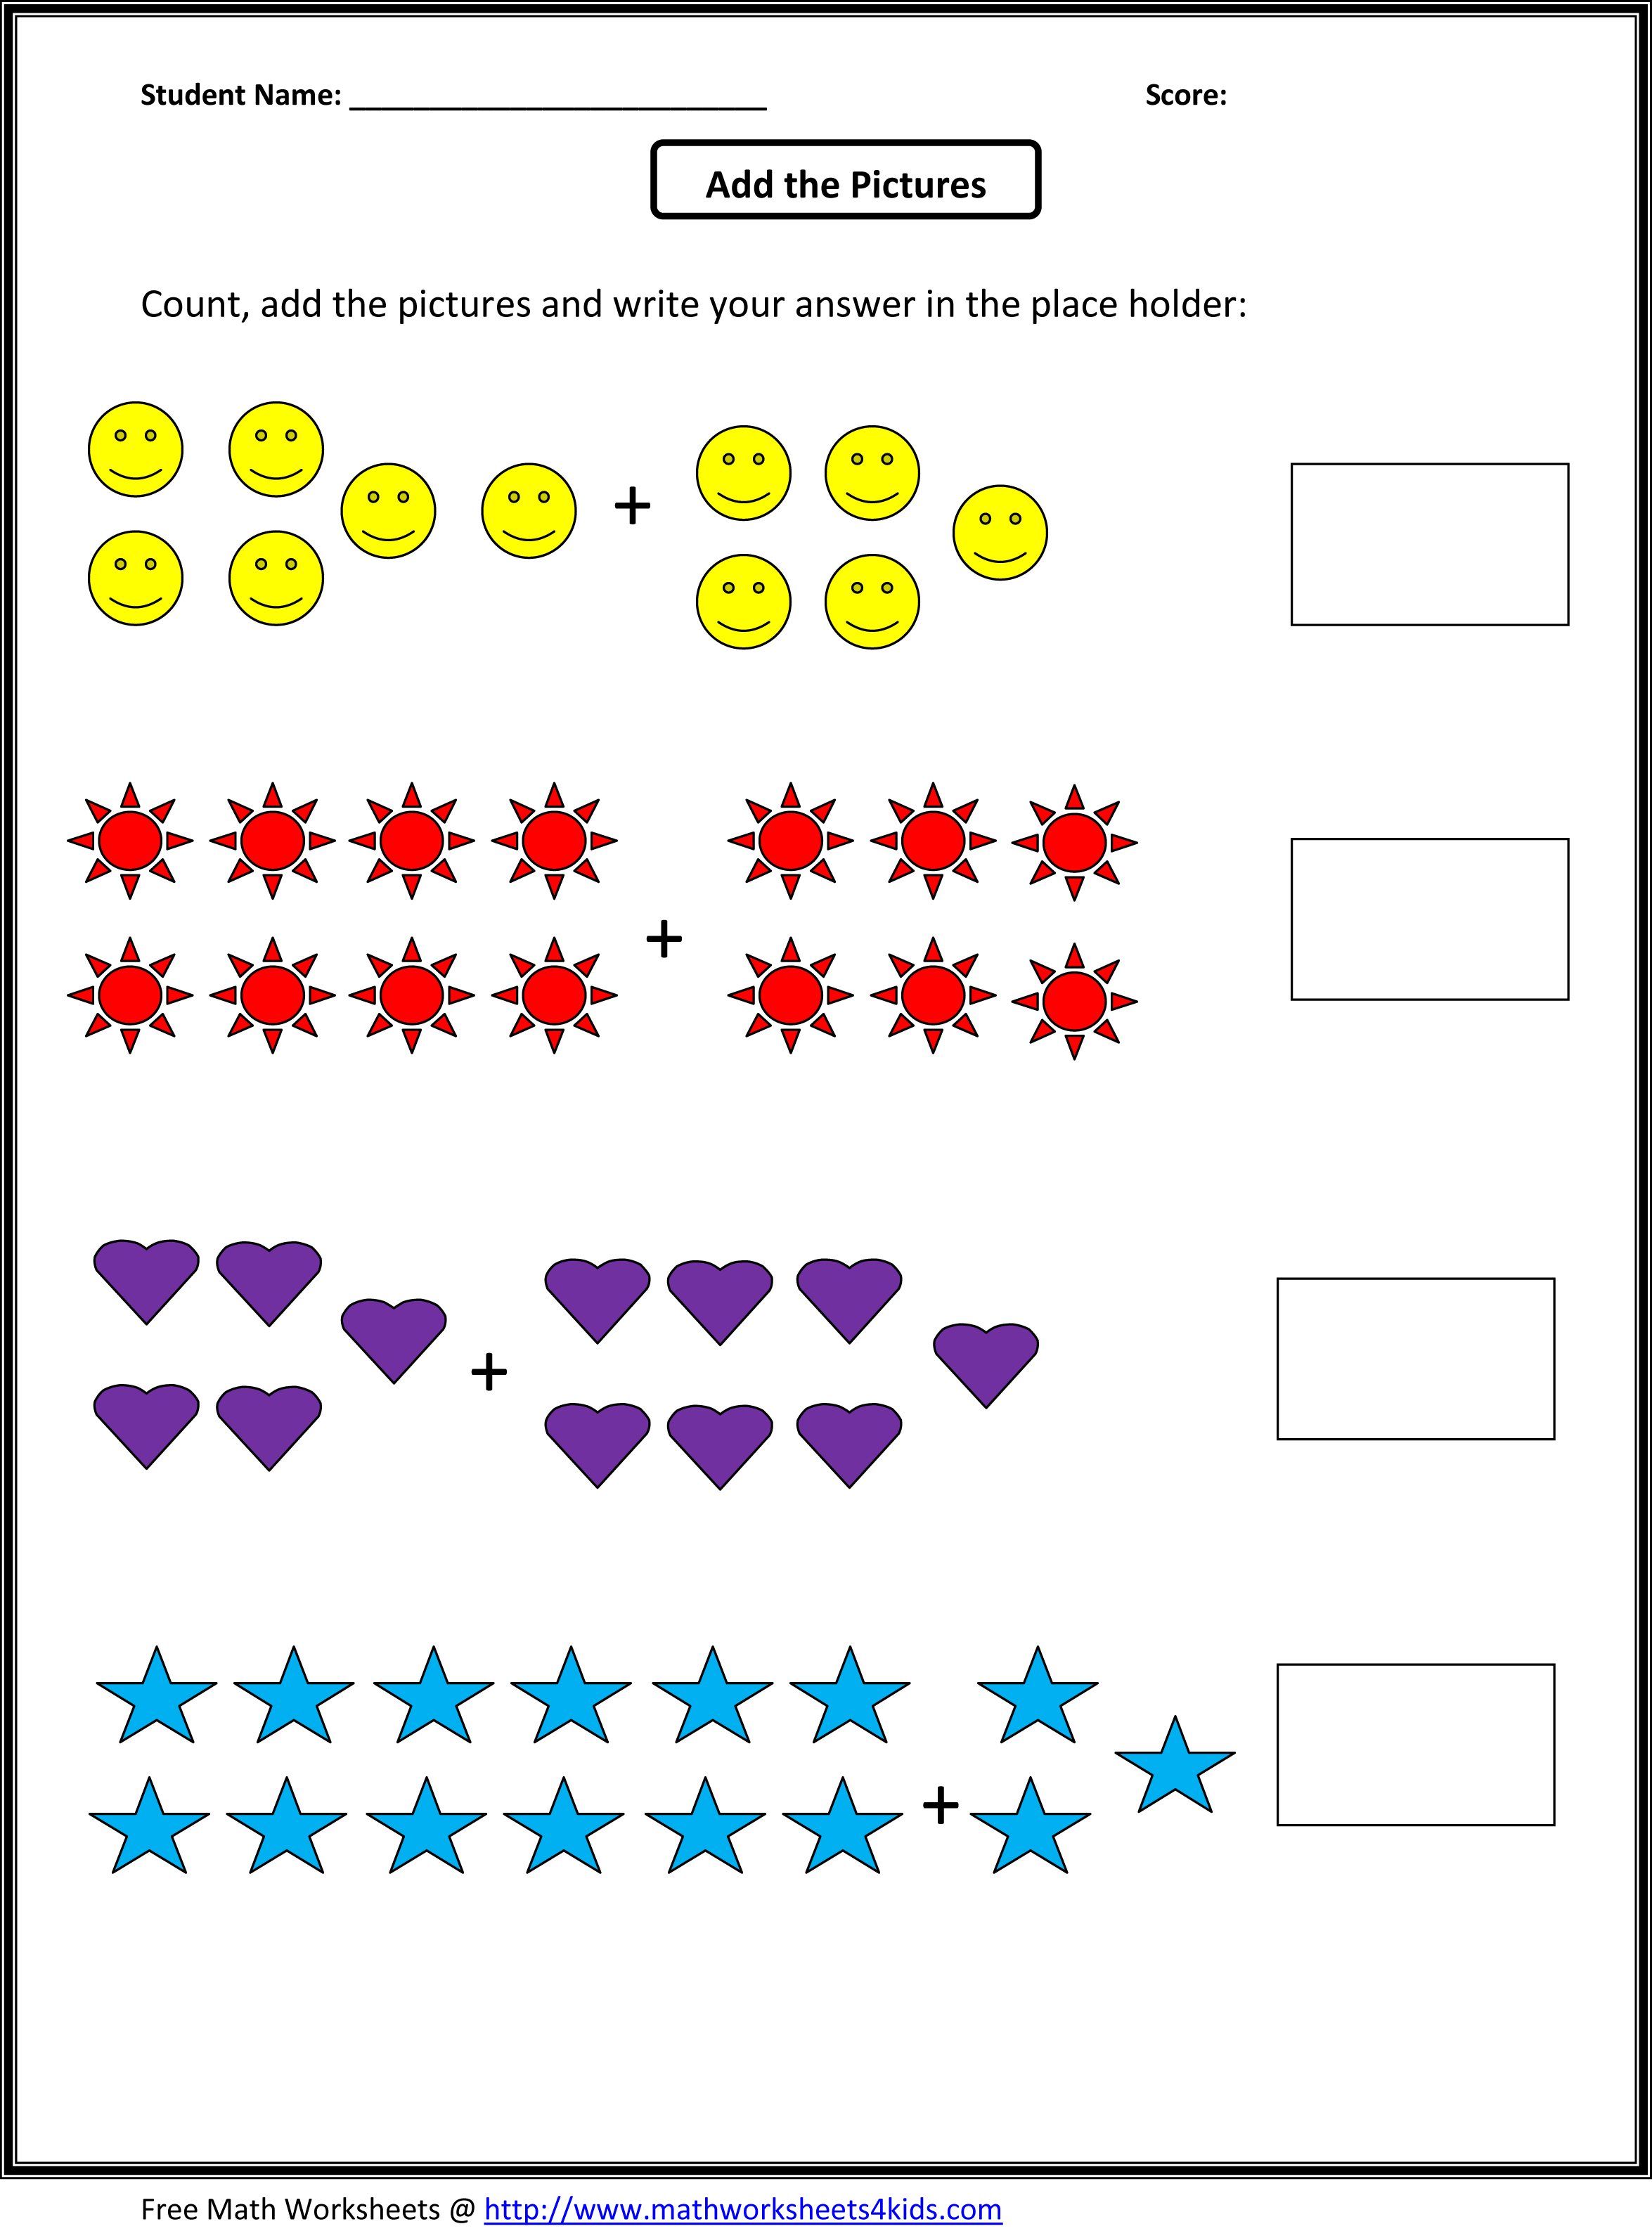 Proatmealus  Terrific Grade  Maths Worksheet  Reocurent With Engaging Math Worksheets For St Grade Free  Reocurent With Amazing Musical Form Worksheet Also Division Worksheets Grade  In Addition Plant Worksheets For High School And Social Studies Worksheet As Well As Relationship Skills Worksheets Additionally Weather Erosion And Deposition Worksheet From Reocurentcom With Proatmealus  Engaging Grade  Maths Worksheet  Reocurent With Amazing Math Worksheets For St Grade Free  Reocurent And Terrific Musical Form Worksheet Also Division Worksheets Grade  In Addition Plant Worksheets For High School From Reocurentcom